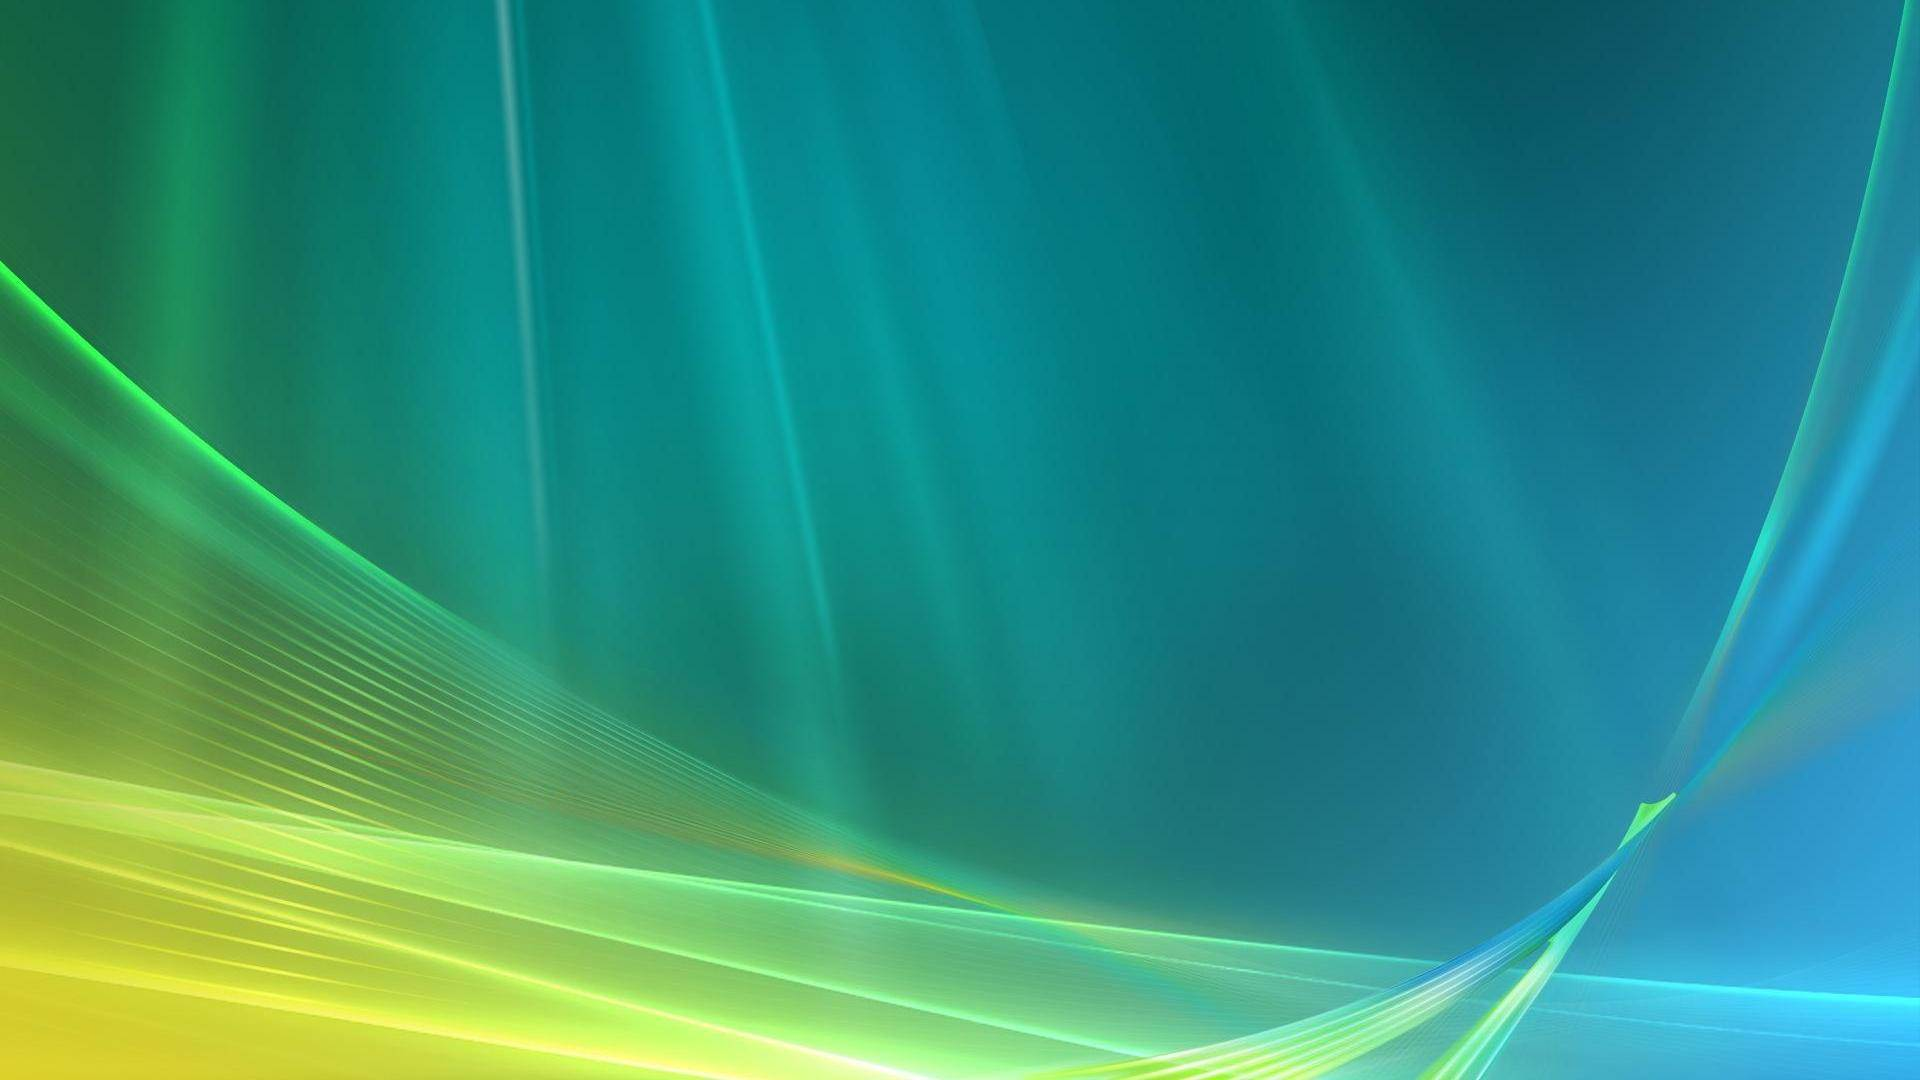 Windows Default Wallpaper HD Images And Wallpapers Page Of 1920x1080